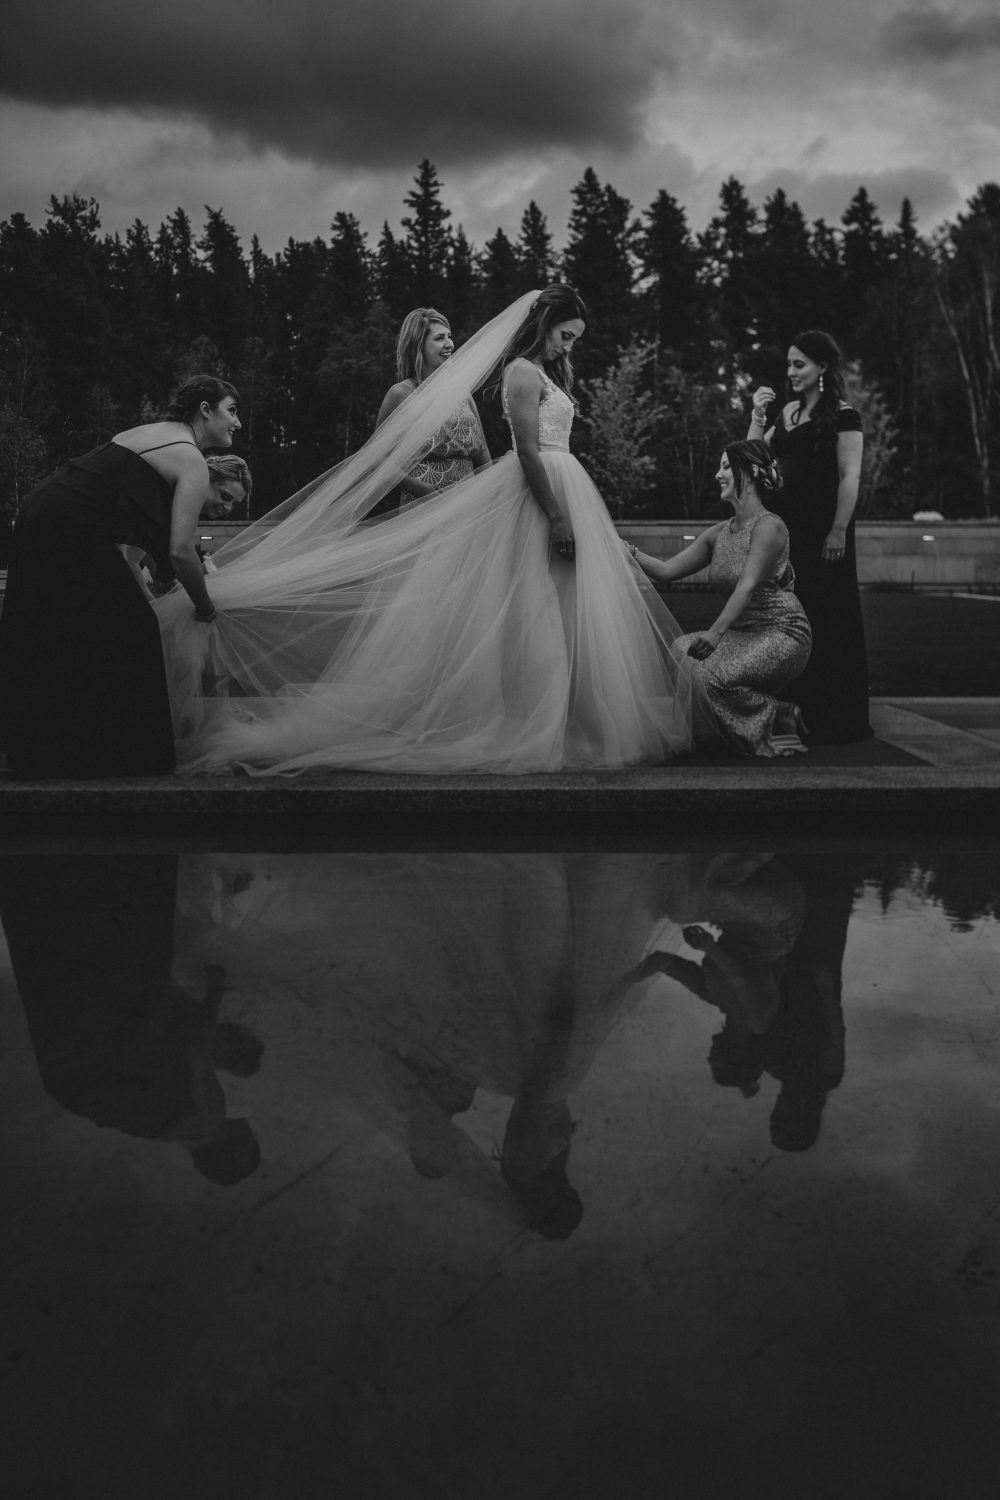 Weddings-2-Cedna-Photography